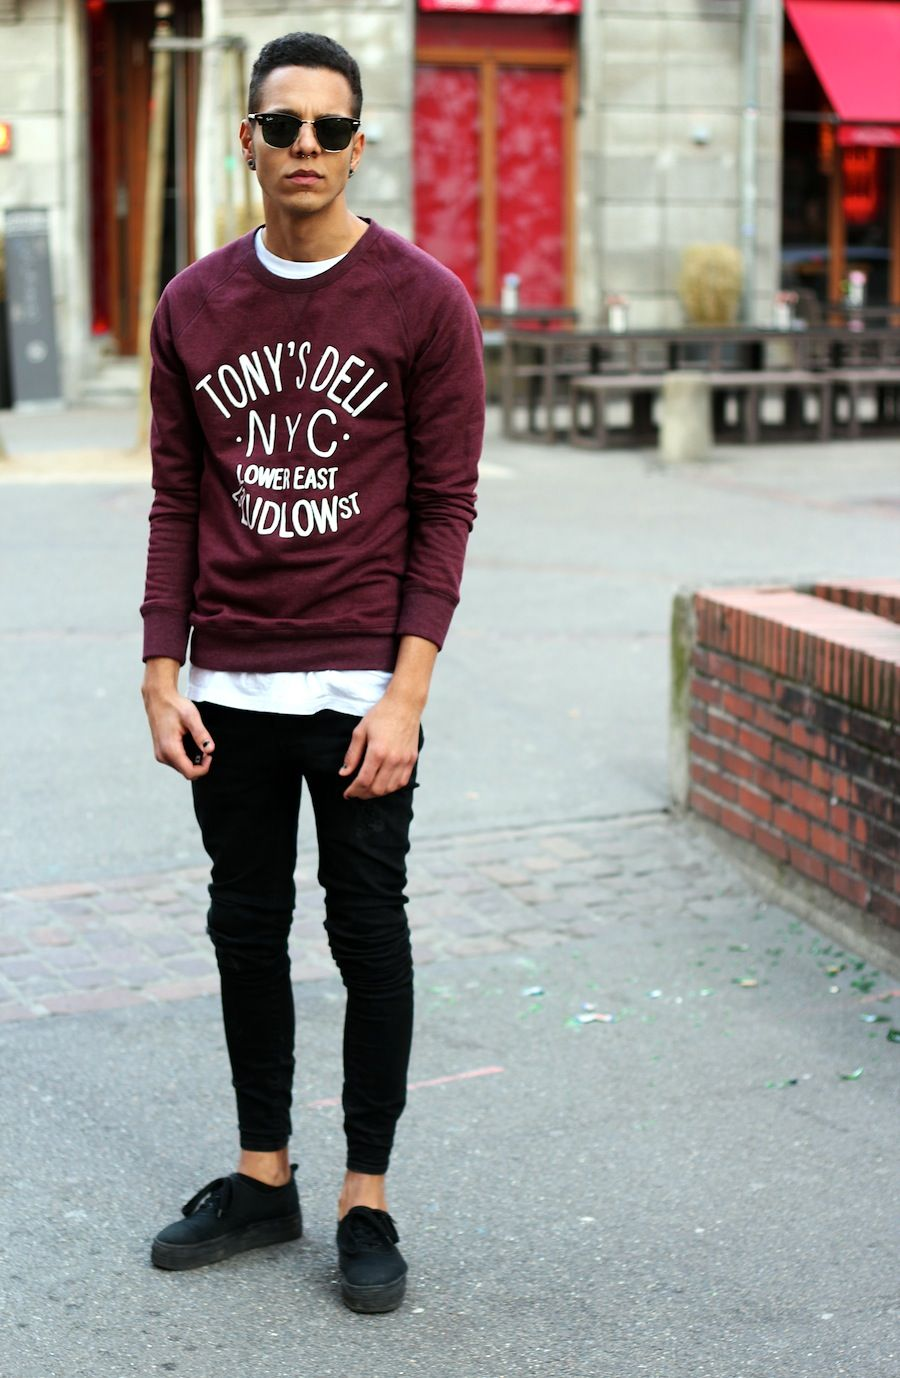 Tumblr Guys Fashion Images Galleries